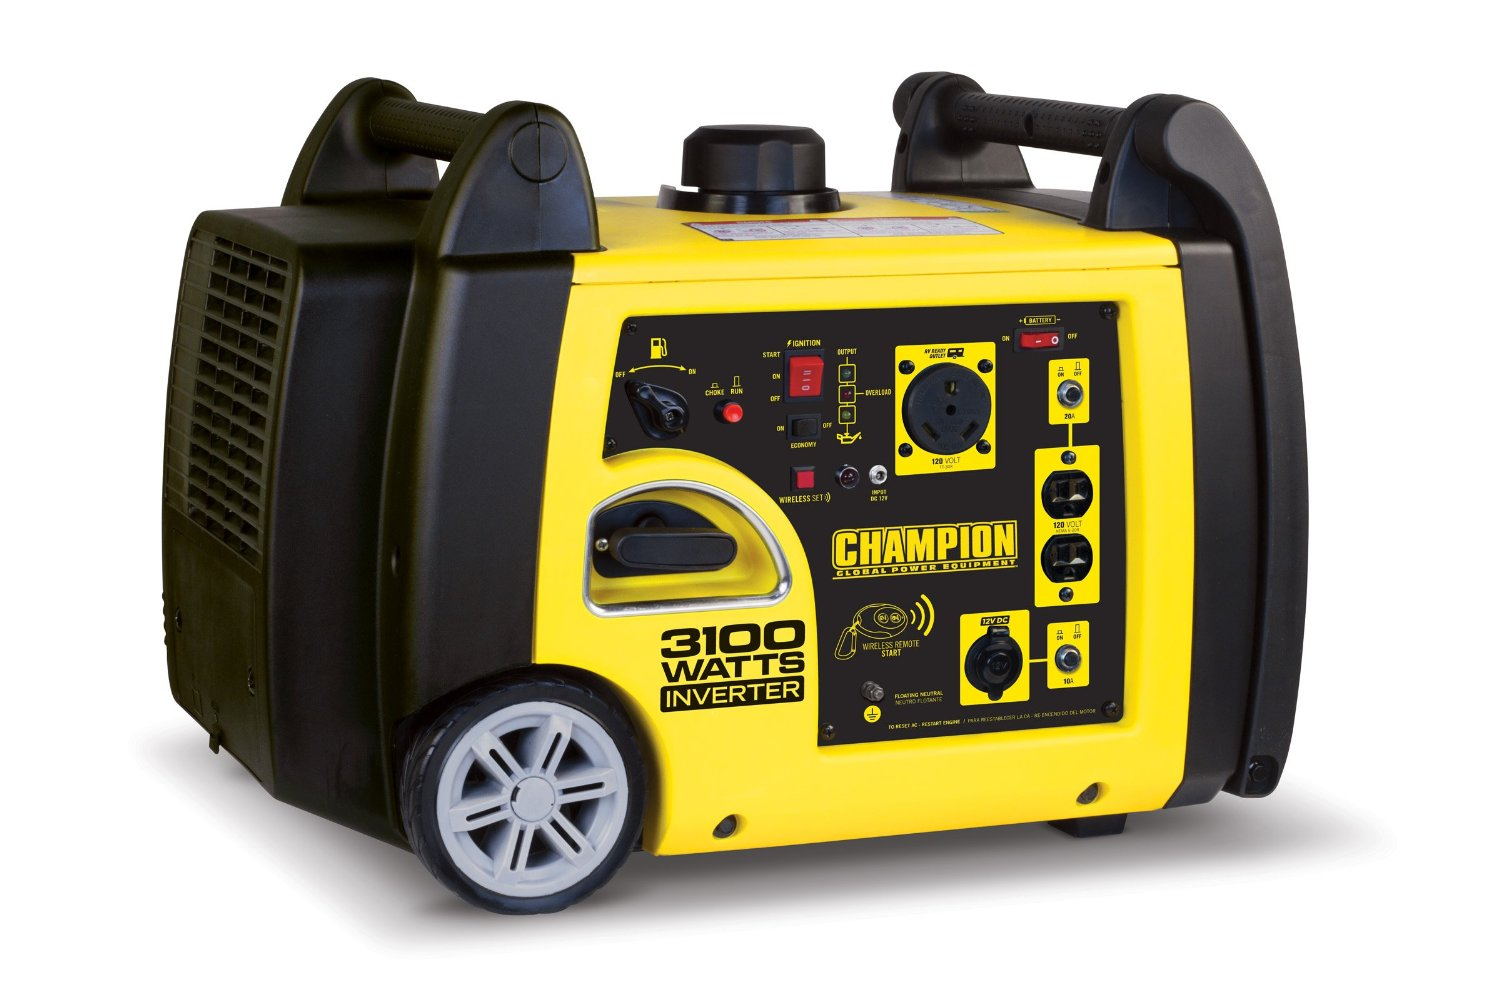 Champion Power Equipment 75537i 3100 Watt RV Ready Portable Inverter Generator